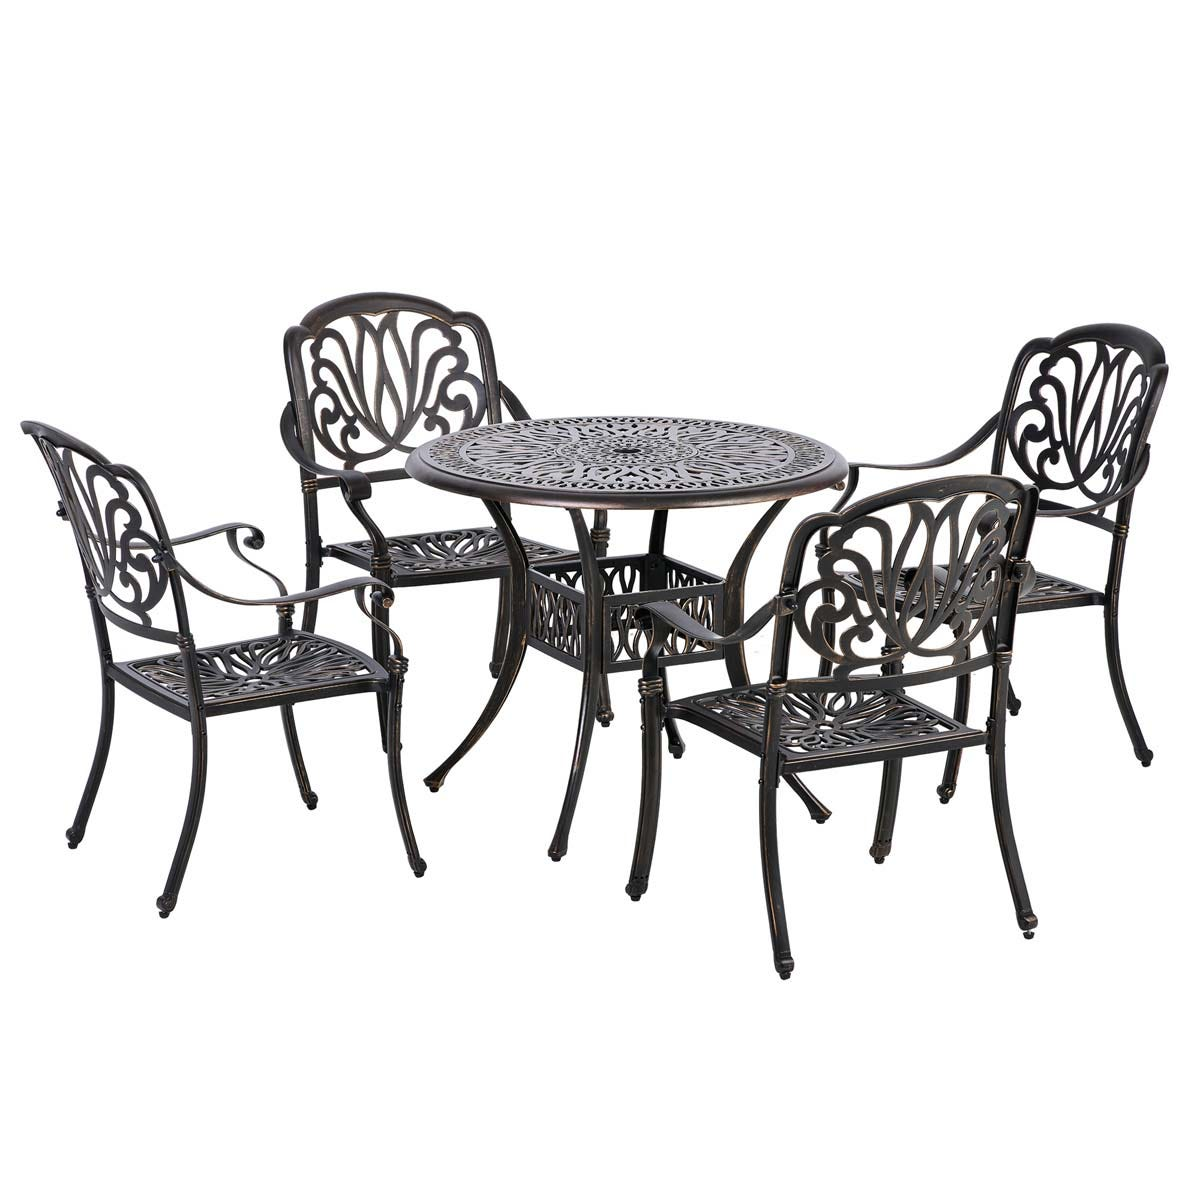 Outsunny 4 Seater Round Garden Dining Set - Bronze